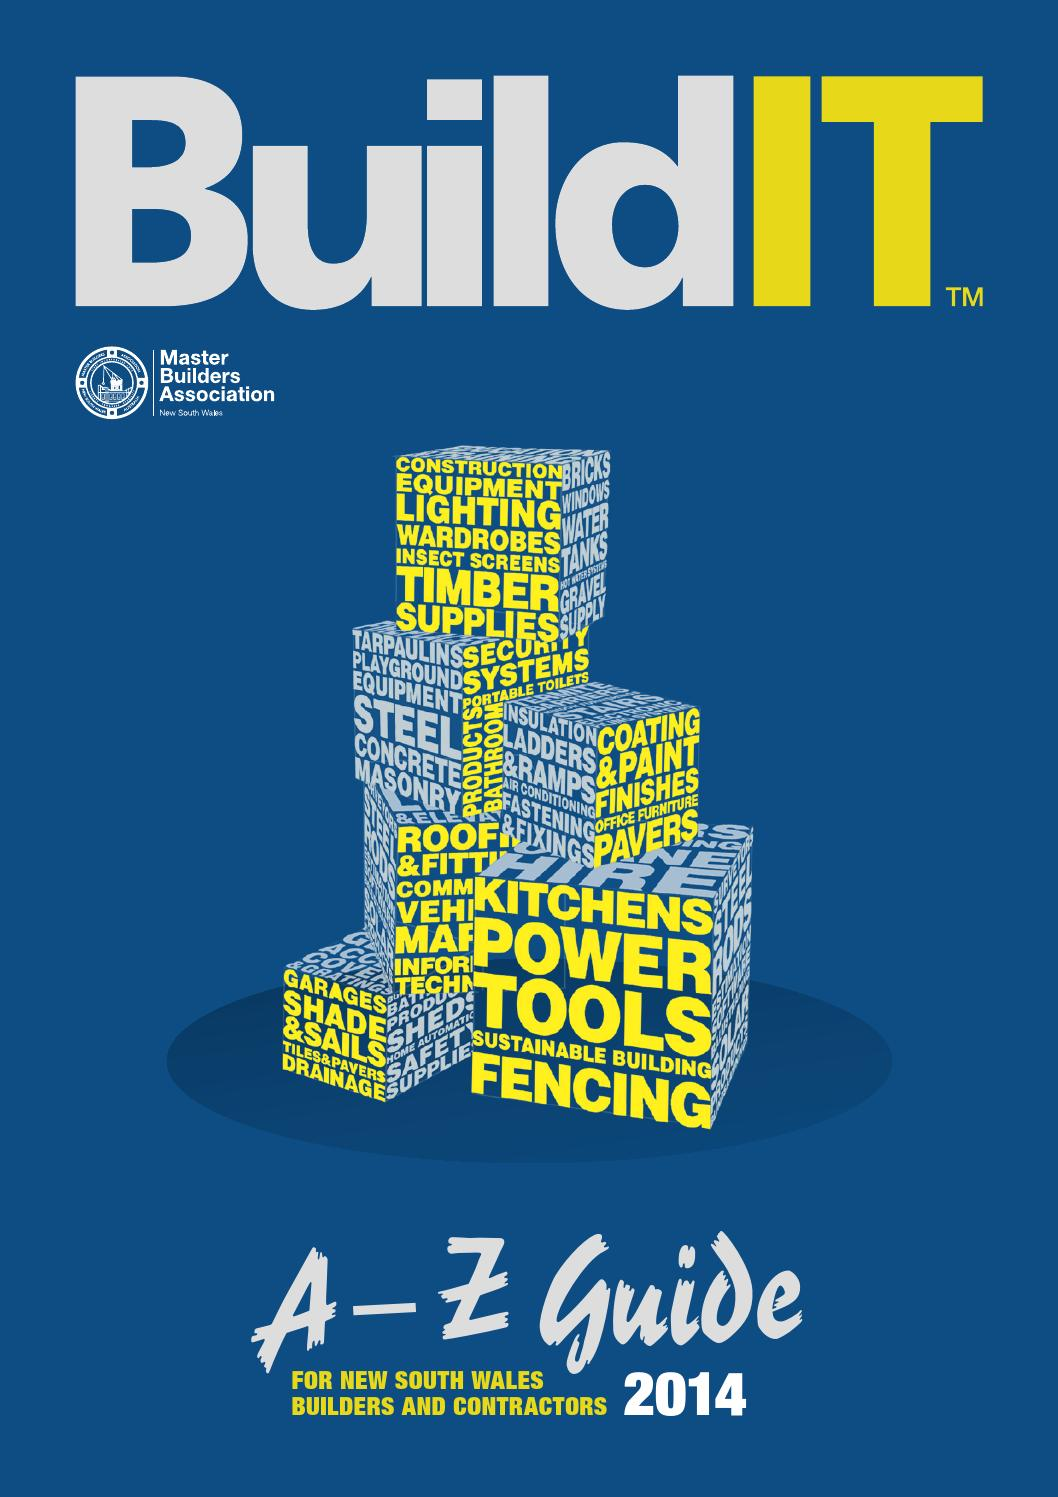 2014 Master Builders New South Wales Buildit Directory By Name Card Holder Binder 6242 Arkmedia4217 Issuu